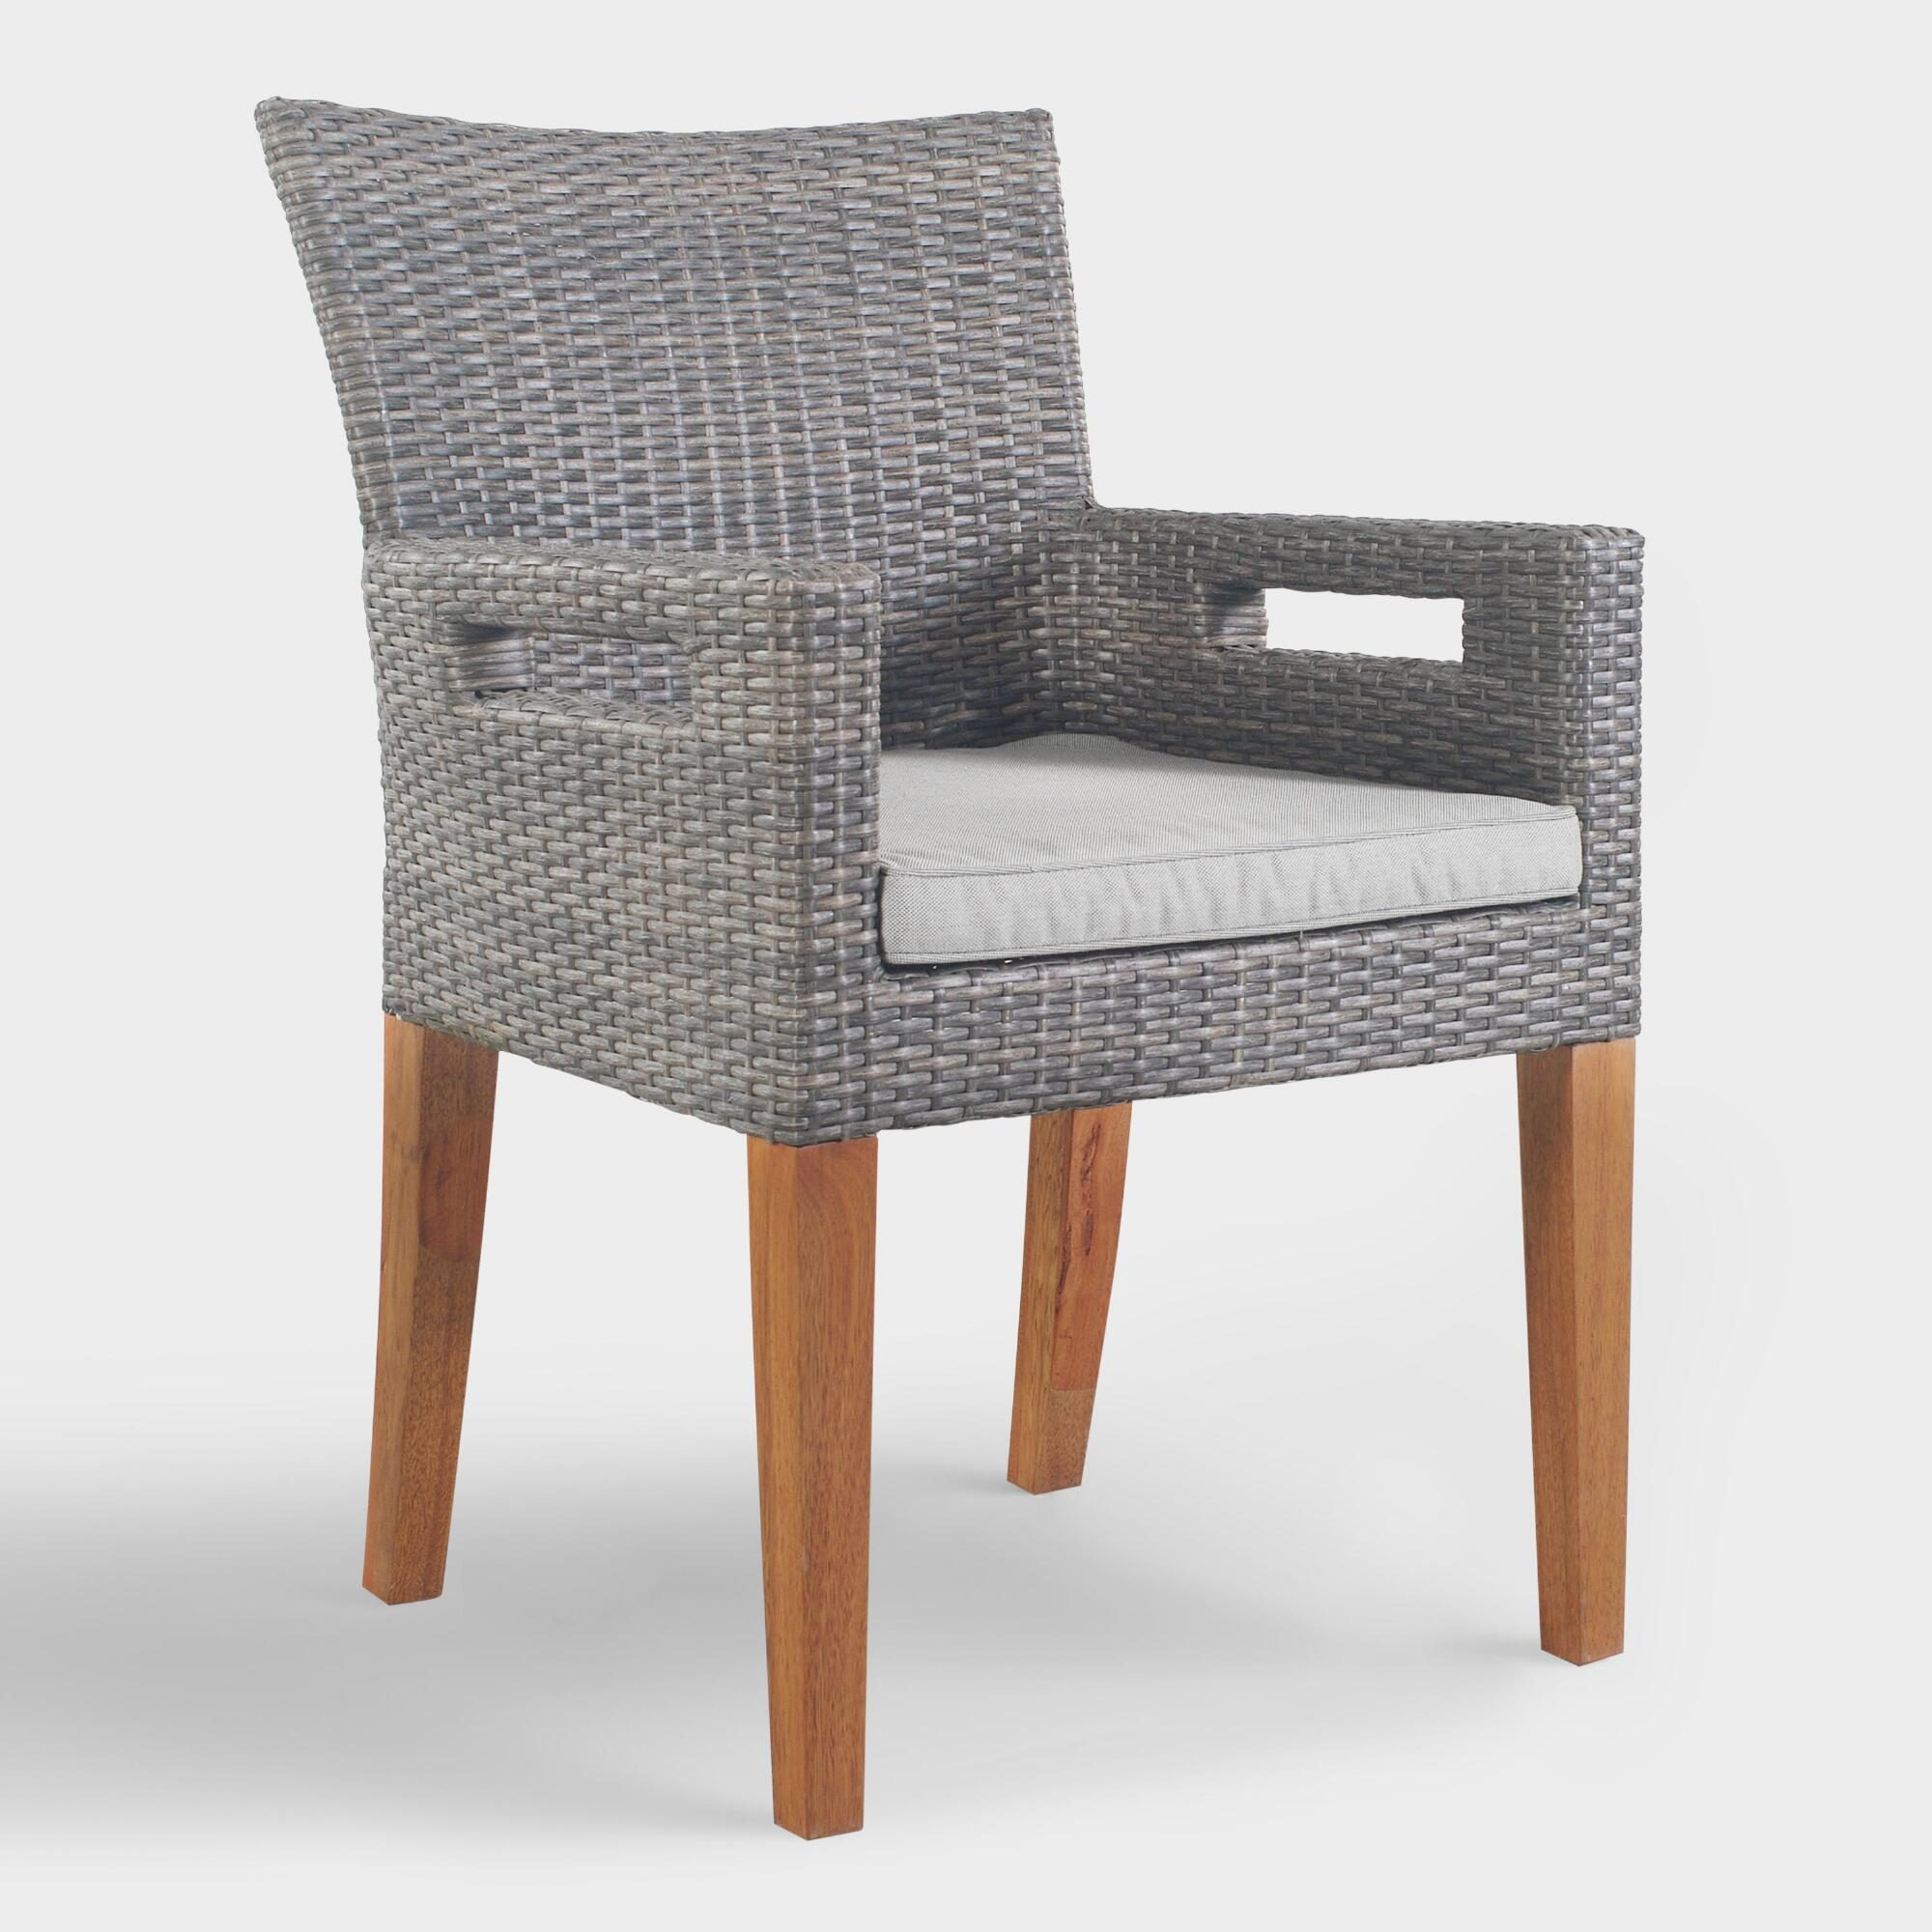 Gray All Weather Wicker Hakui Armchairs Set of 2 - Resin by World Market